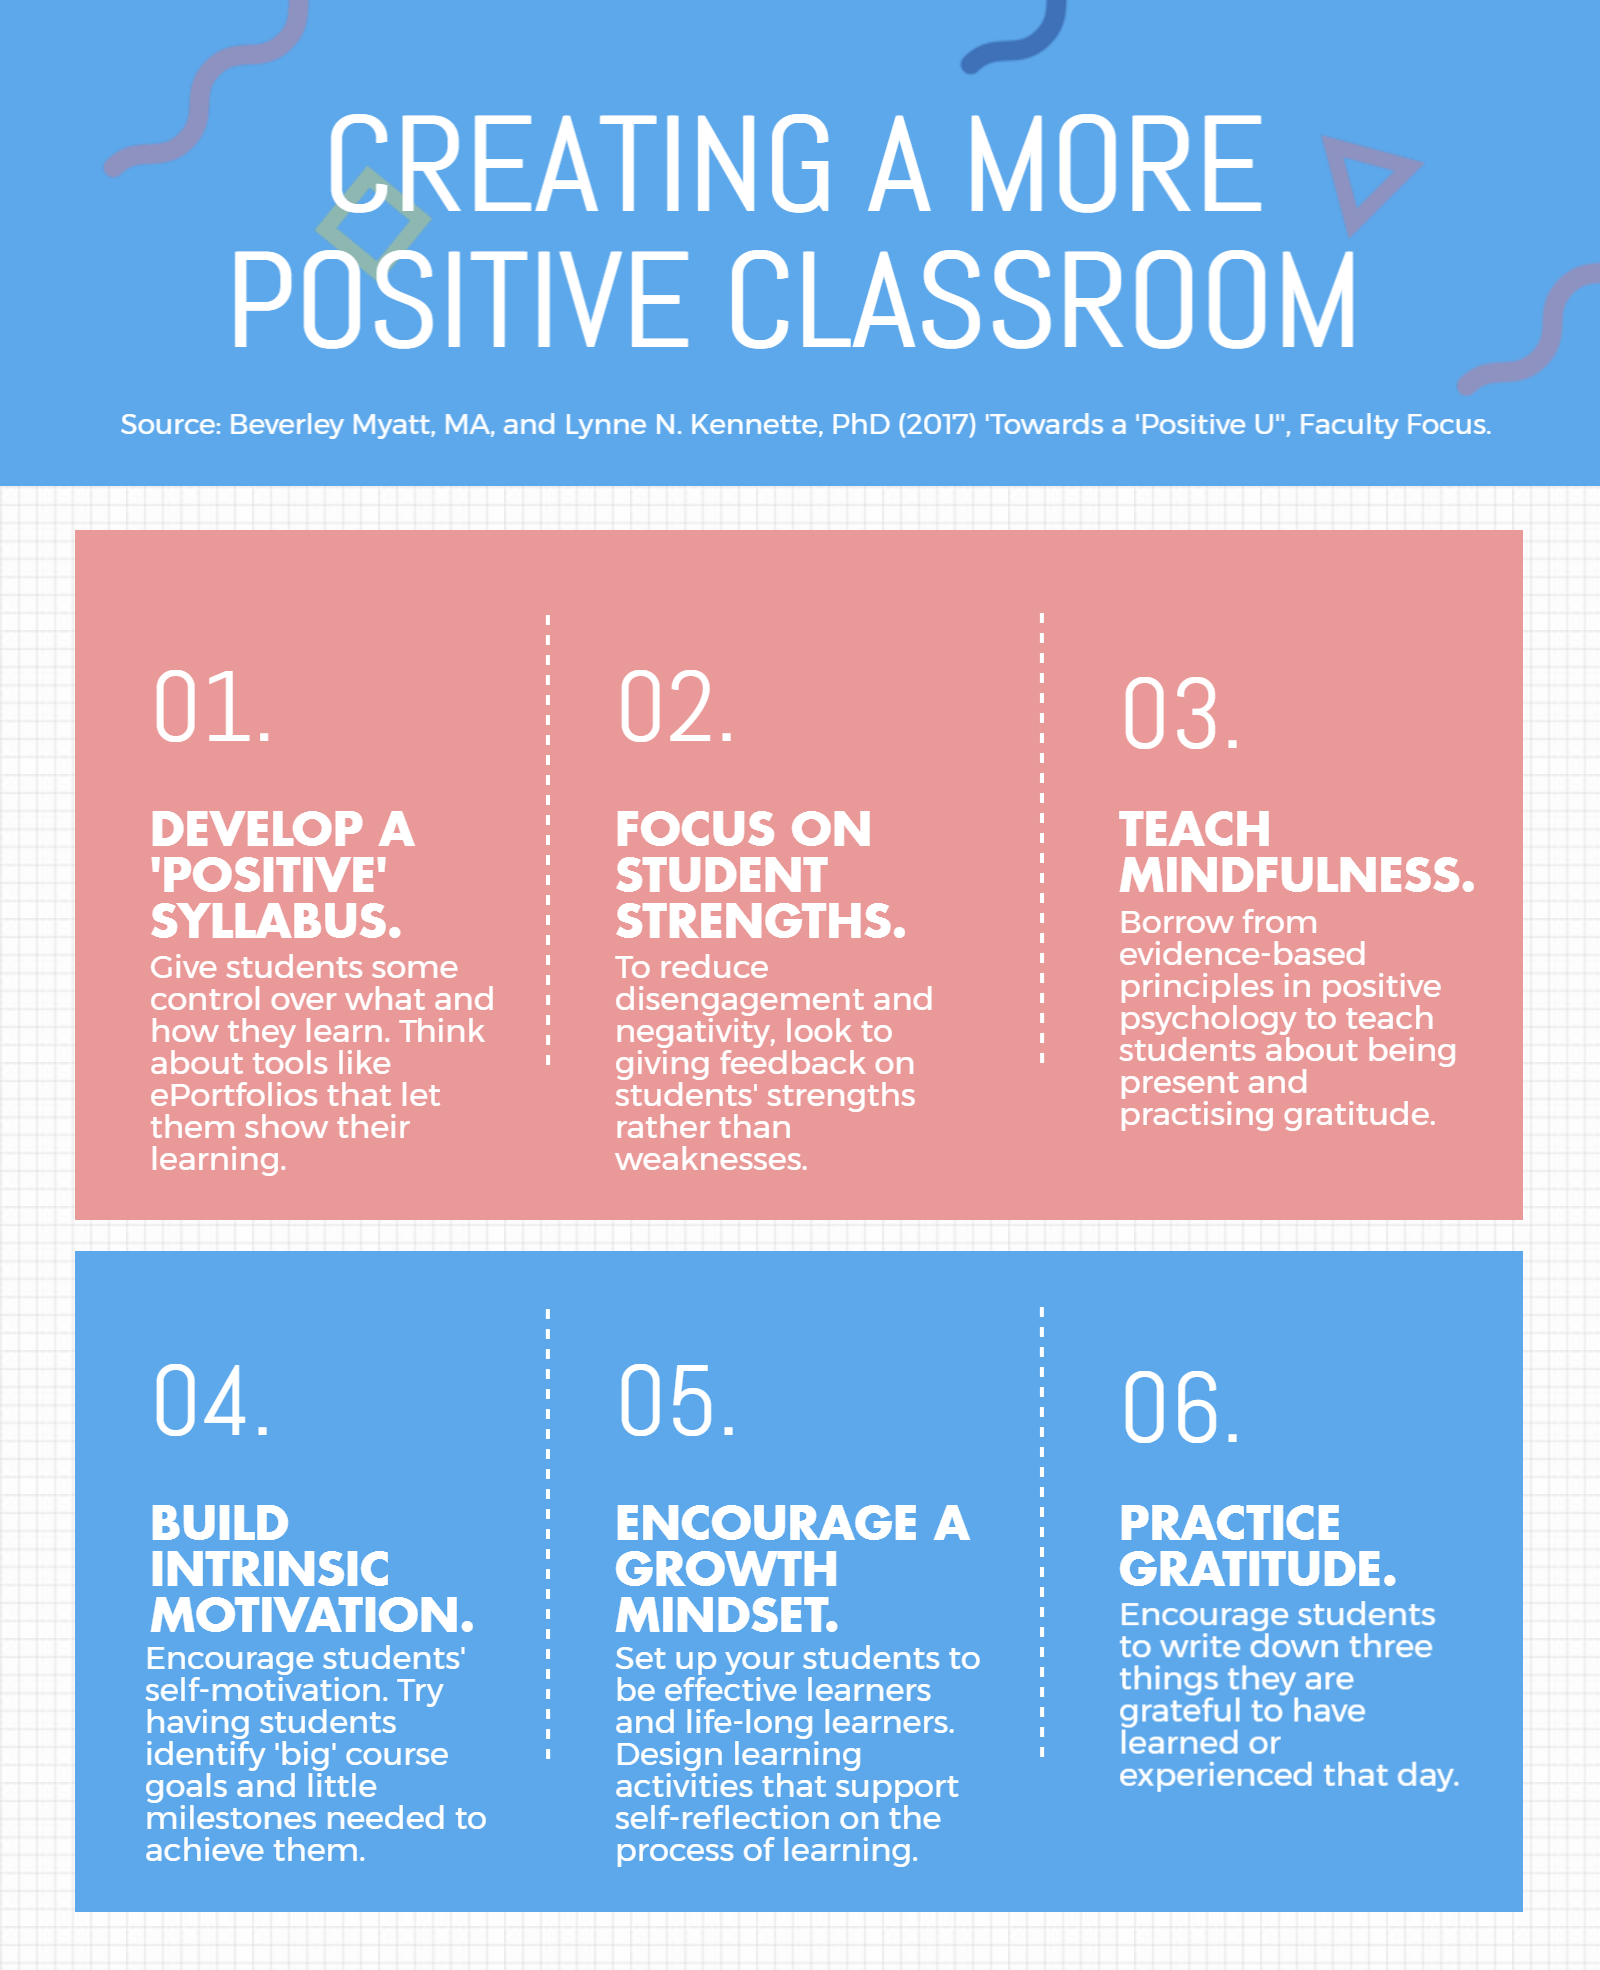 Explore Some Teaching Strategies That Can Help Provide A